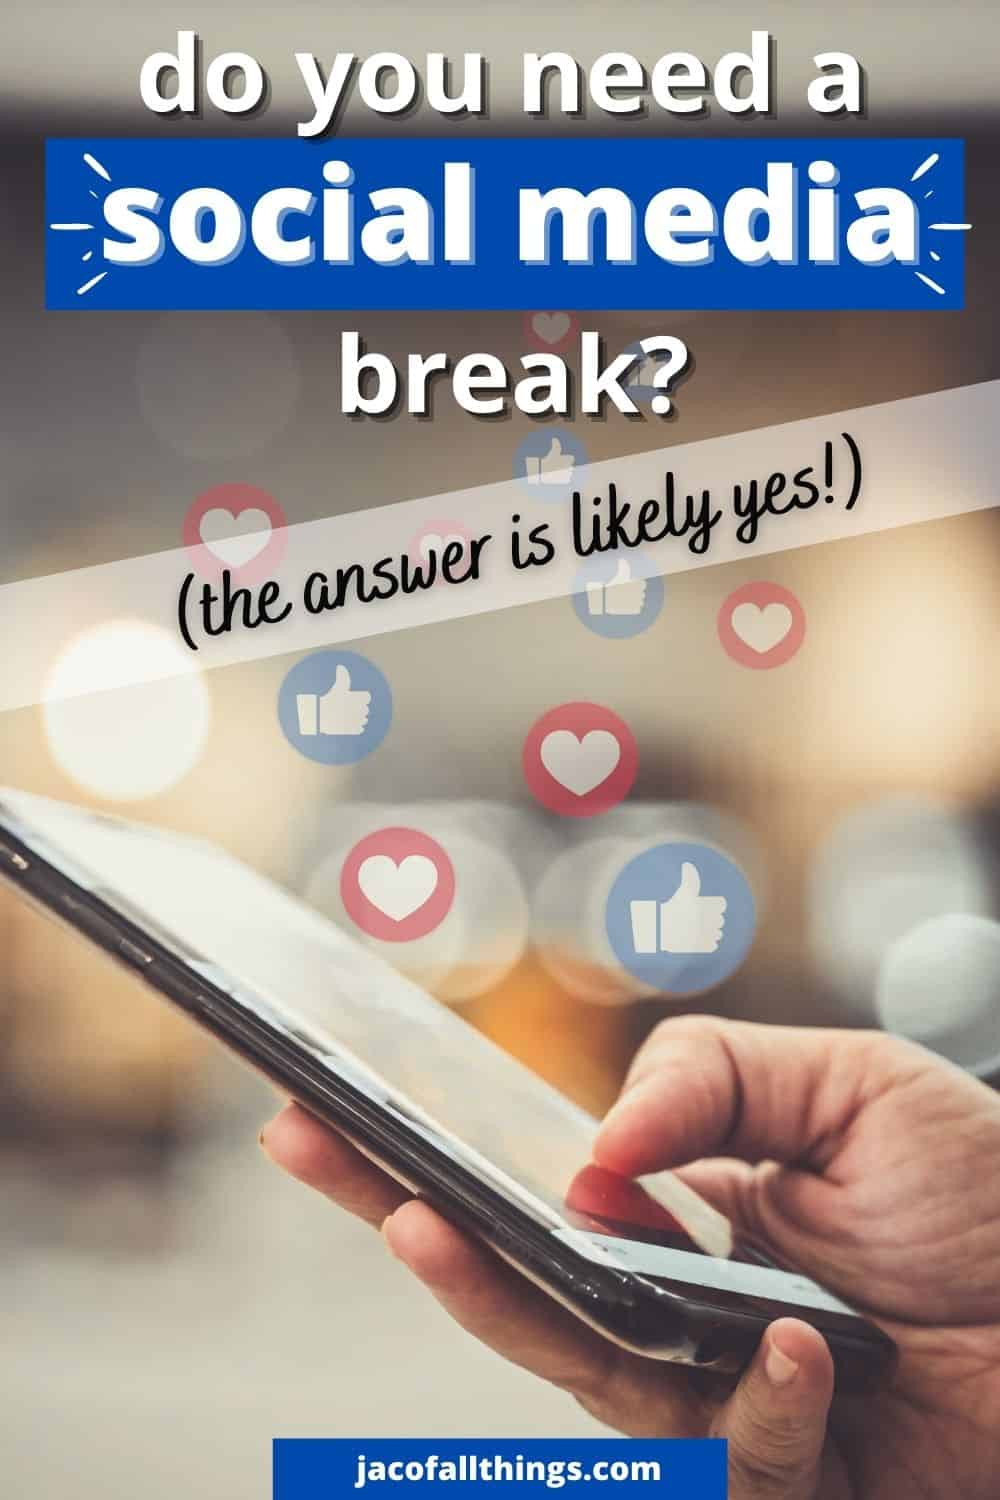 Are you spending too much time on social media? Learn how to set yourself up for success in taking a social media break and reducing the amount of time you spend on your phone.